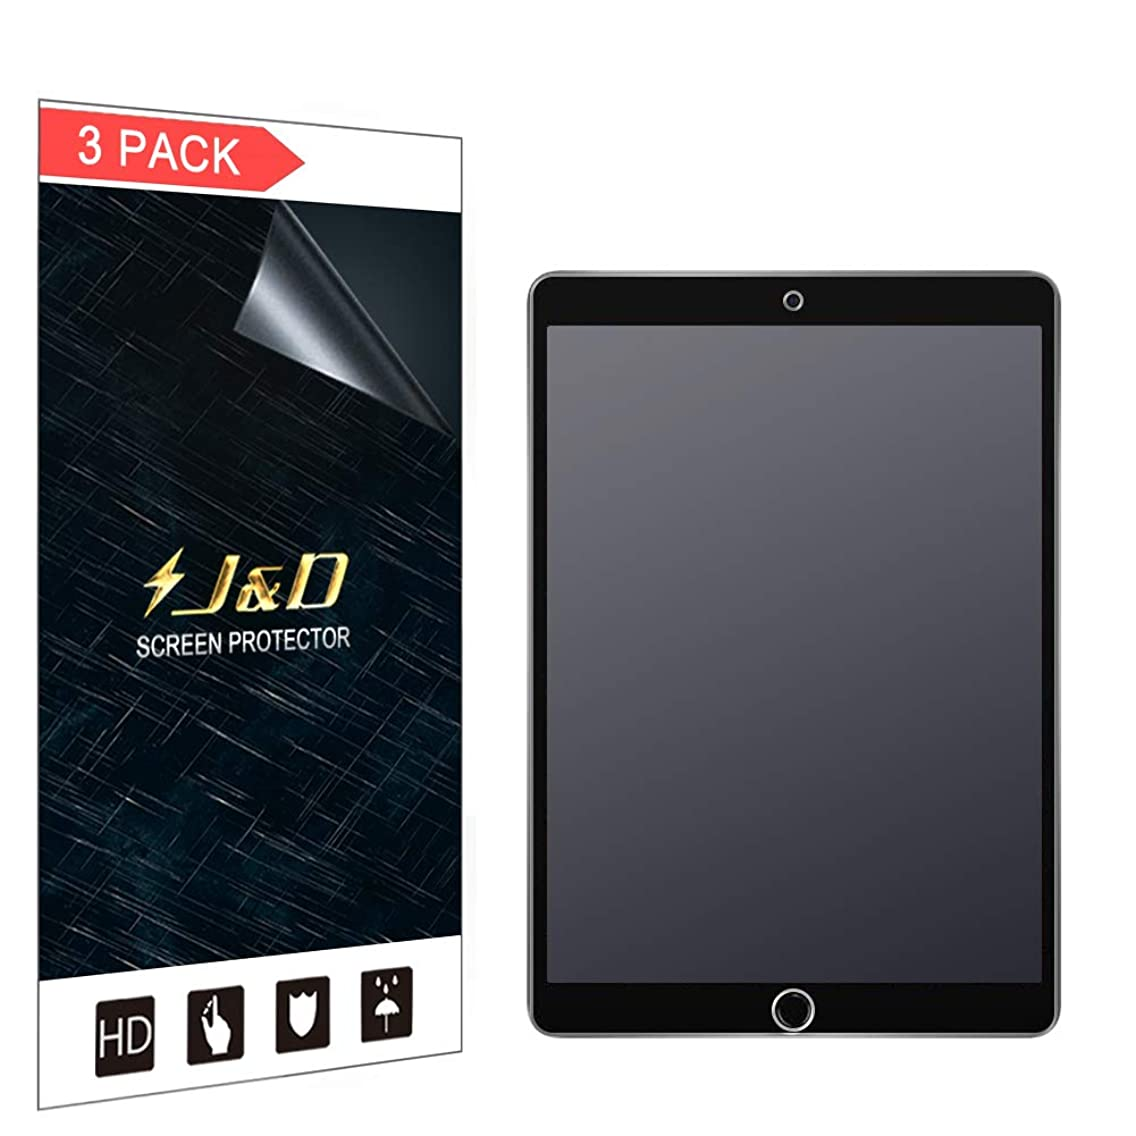 J&D Compatible for 3-Pack New iPad Air (2019) 10.5'' Screen Protector, [Anti-Glare] [Not Full Coverage] Matte Film Shield Screen Protector for Apple New iPad Air 10.5 inch 2019 Matte Screen Protector